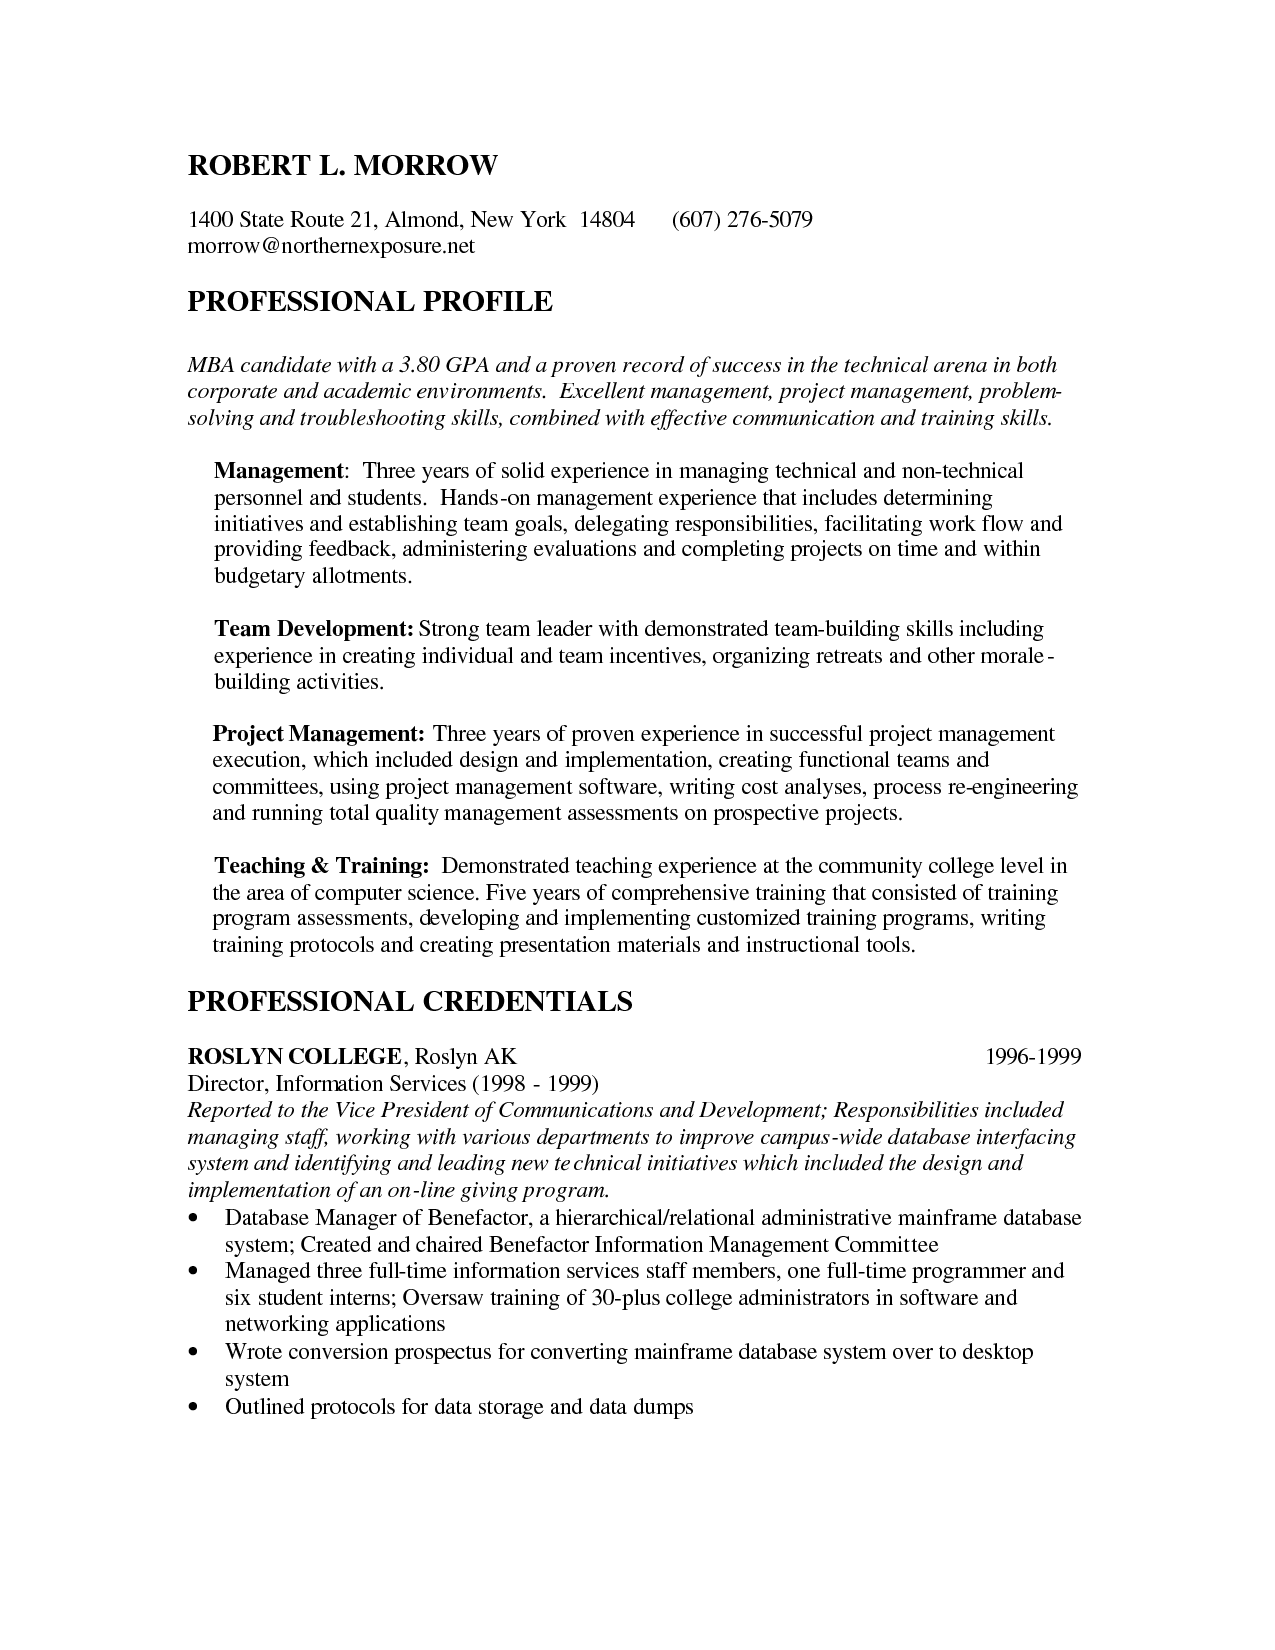 Academic Resume Sample Mba Candidate Resume  Httpwwwresumecareermbacandidate